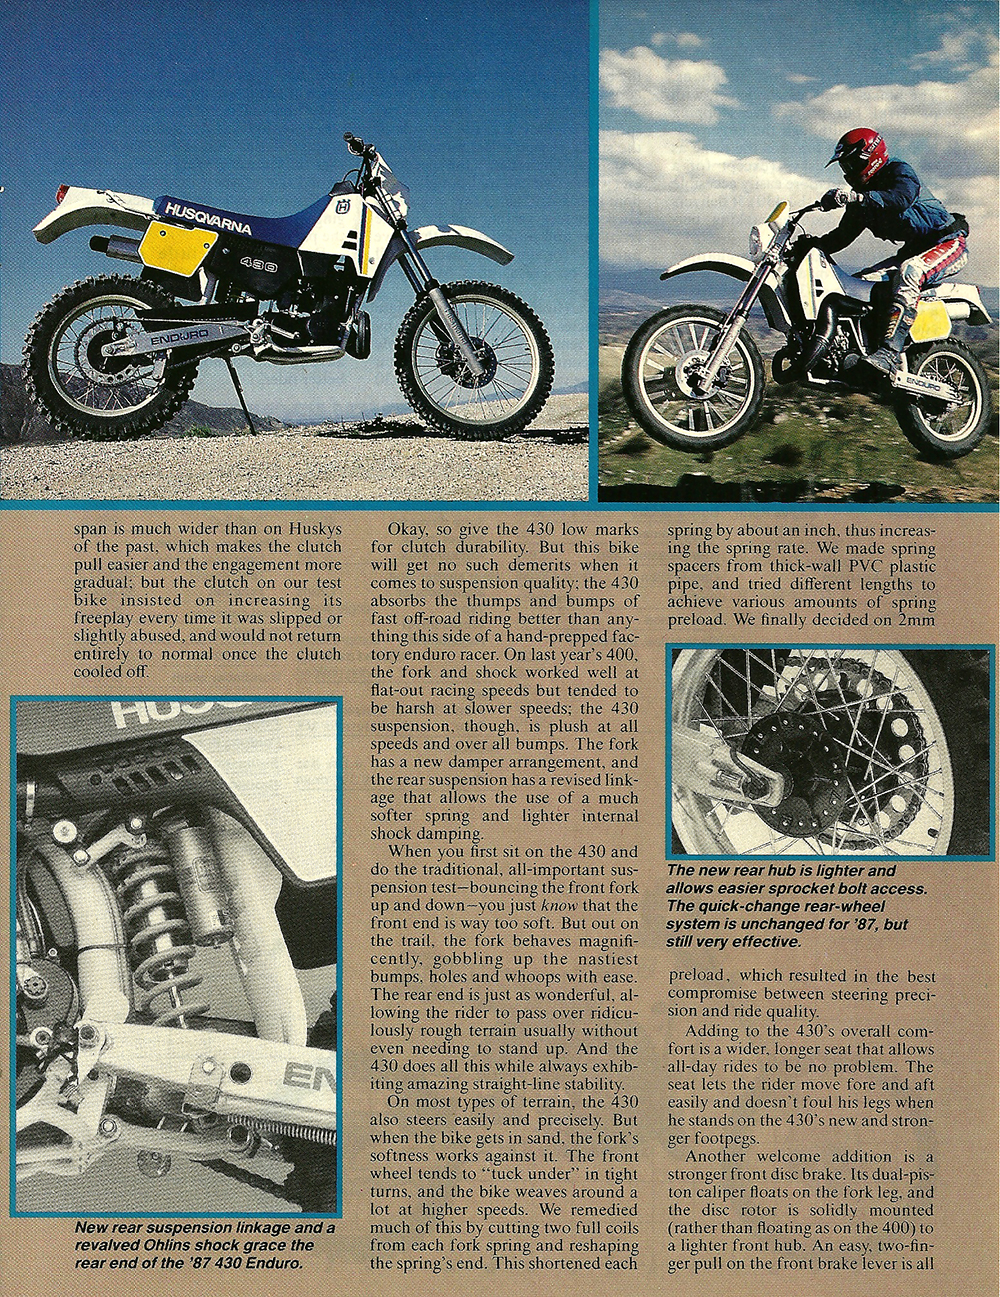 1987 Husqvarna 430 enduro road test 04.jpg